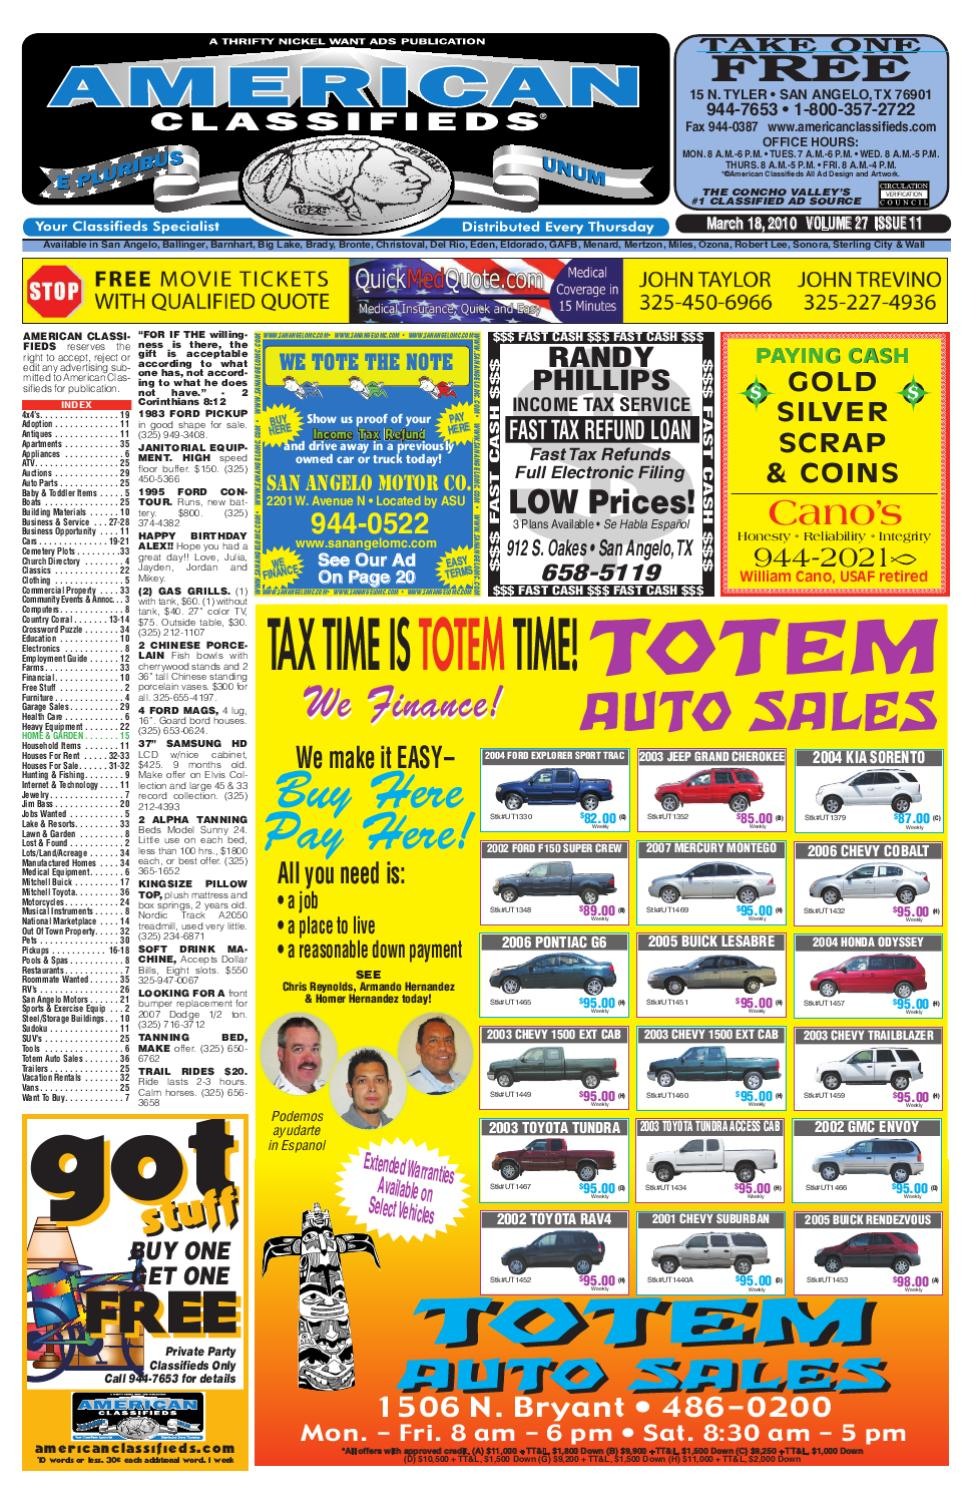 San angelo american classifieds by san angelo american for Fast cash motors tyler tx